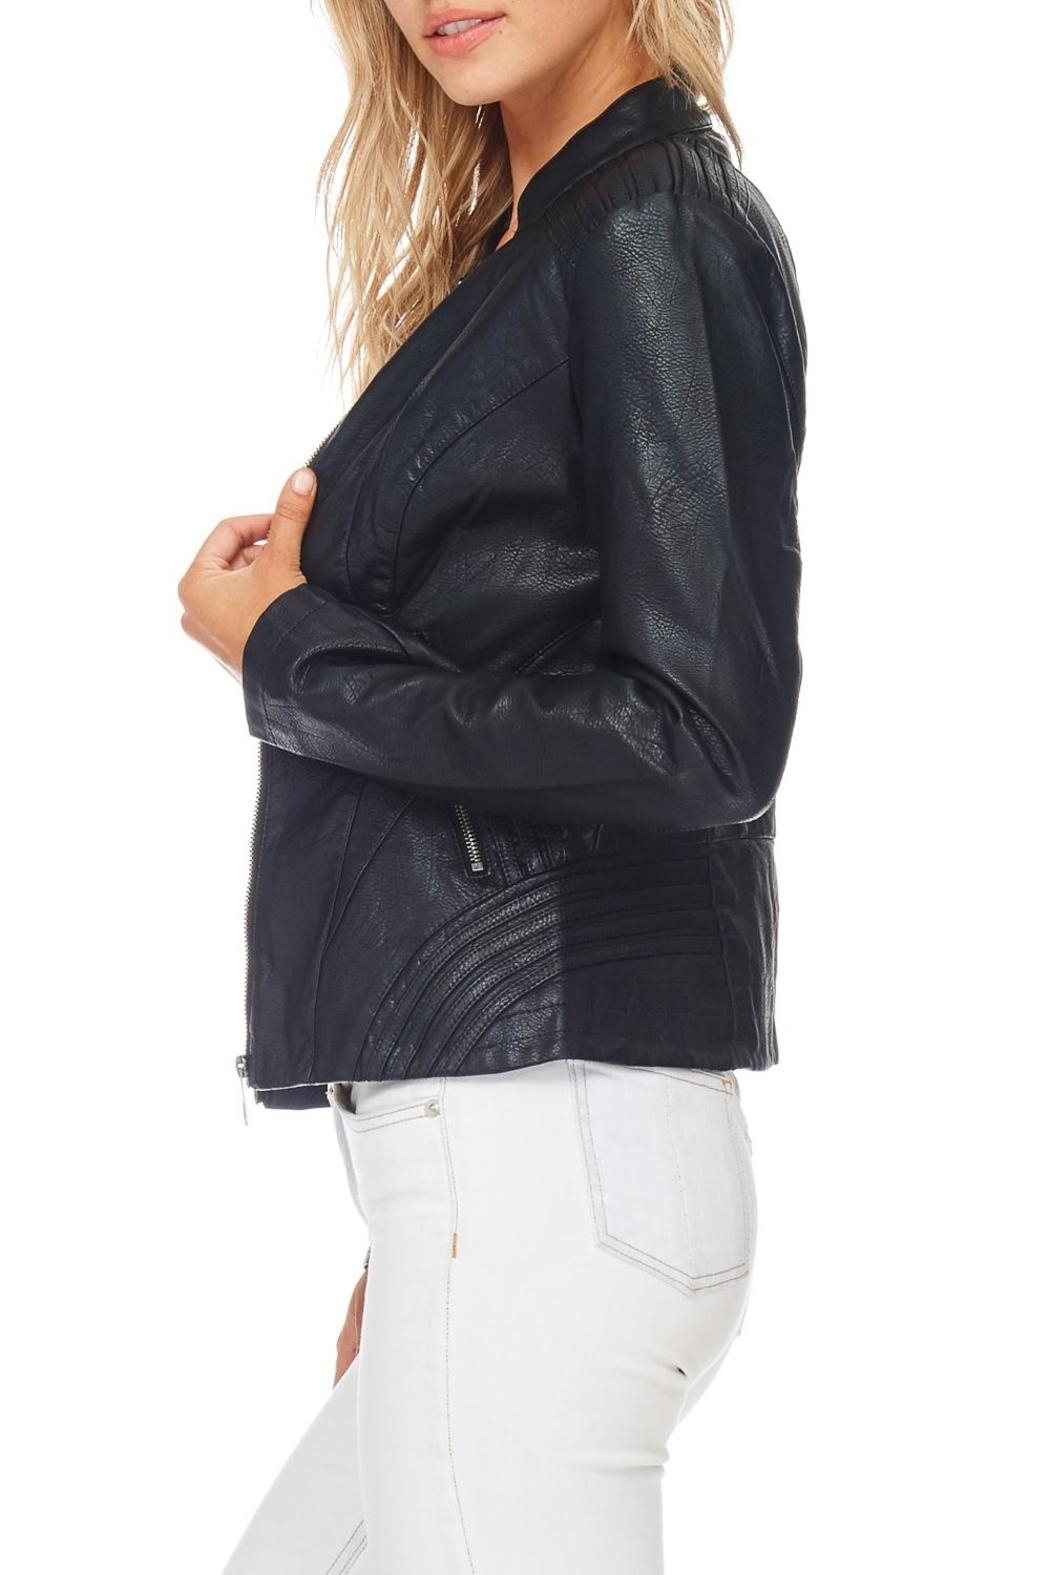 Coalition Black Vegan Leather Jacket - Back Cropped Image